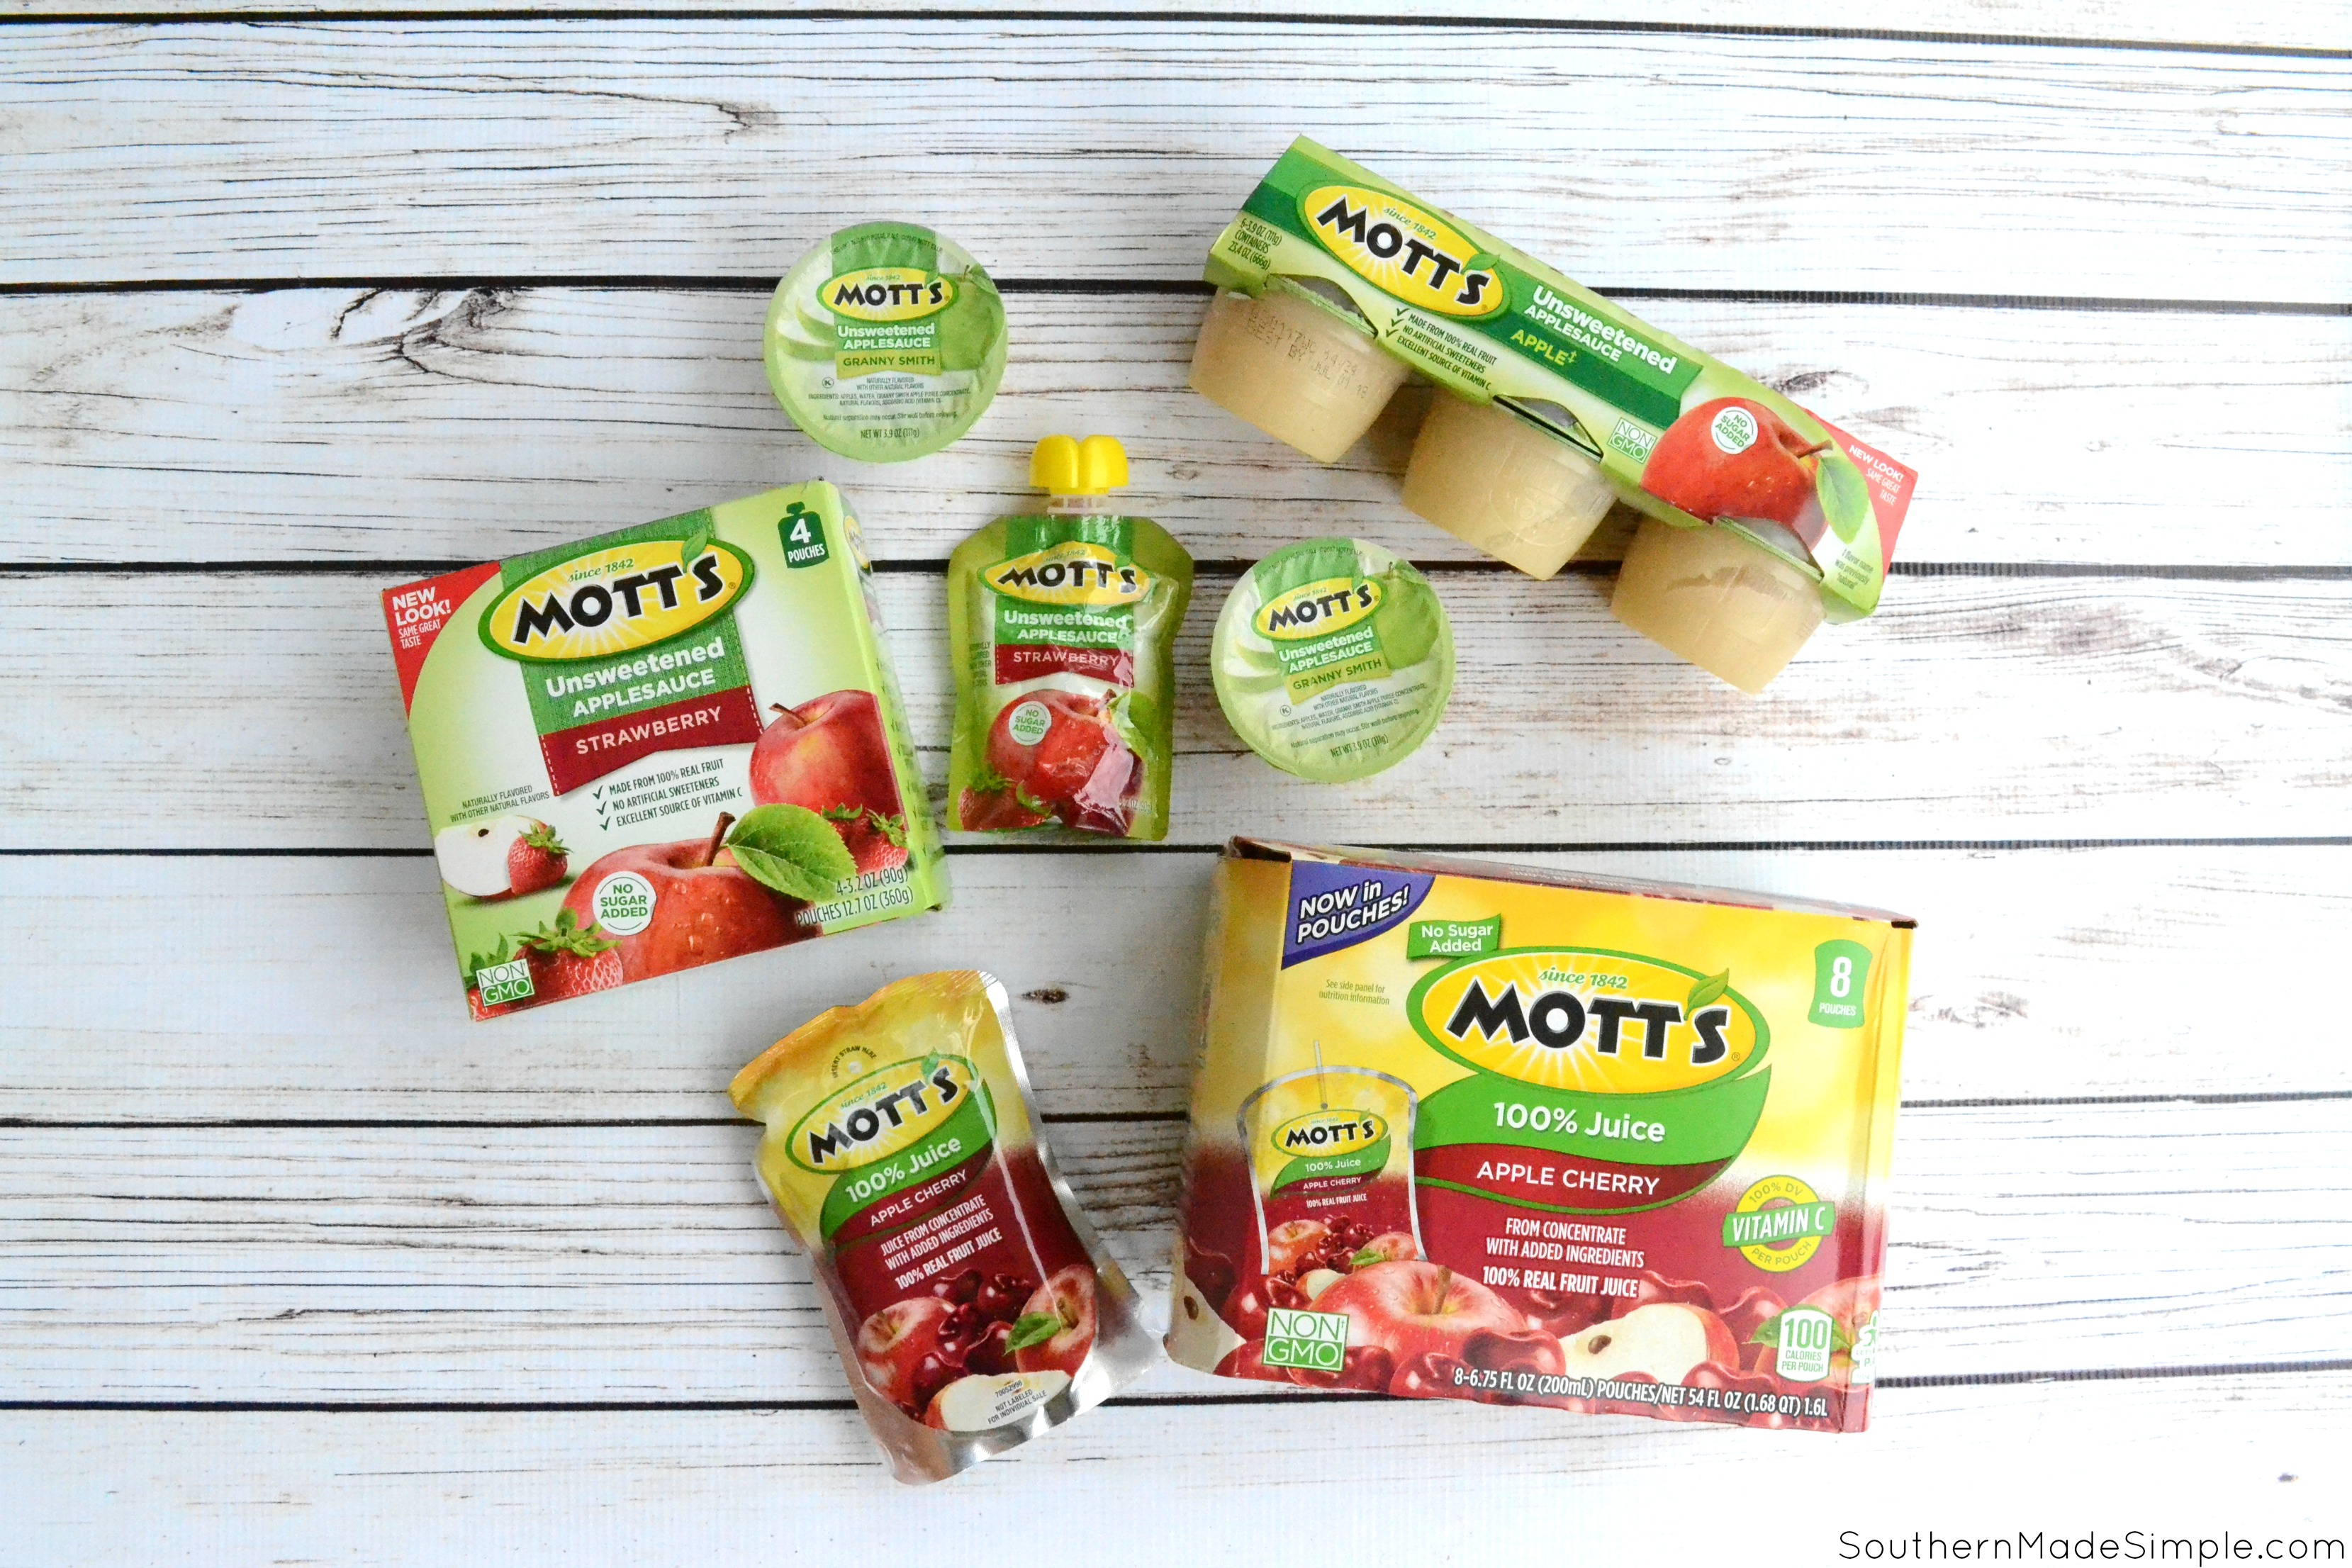 Healthy choices today make for a healthy tomorrow, and Mott's Applesauce and juices are encouraging my daughter to stick to delicious and healthier options so she can grow big and strong! Learn how to snag a free growth chart from Mott's +plus see how we repurposed applesauce cups and used them in our garden! #WatchMeGrow #ad @Motts